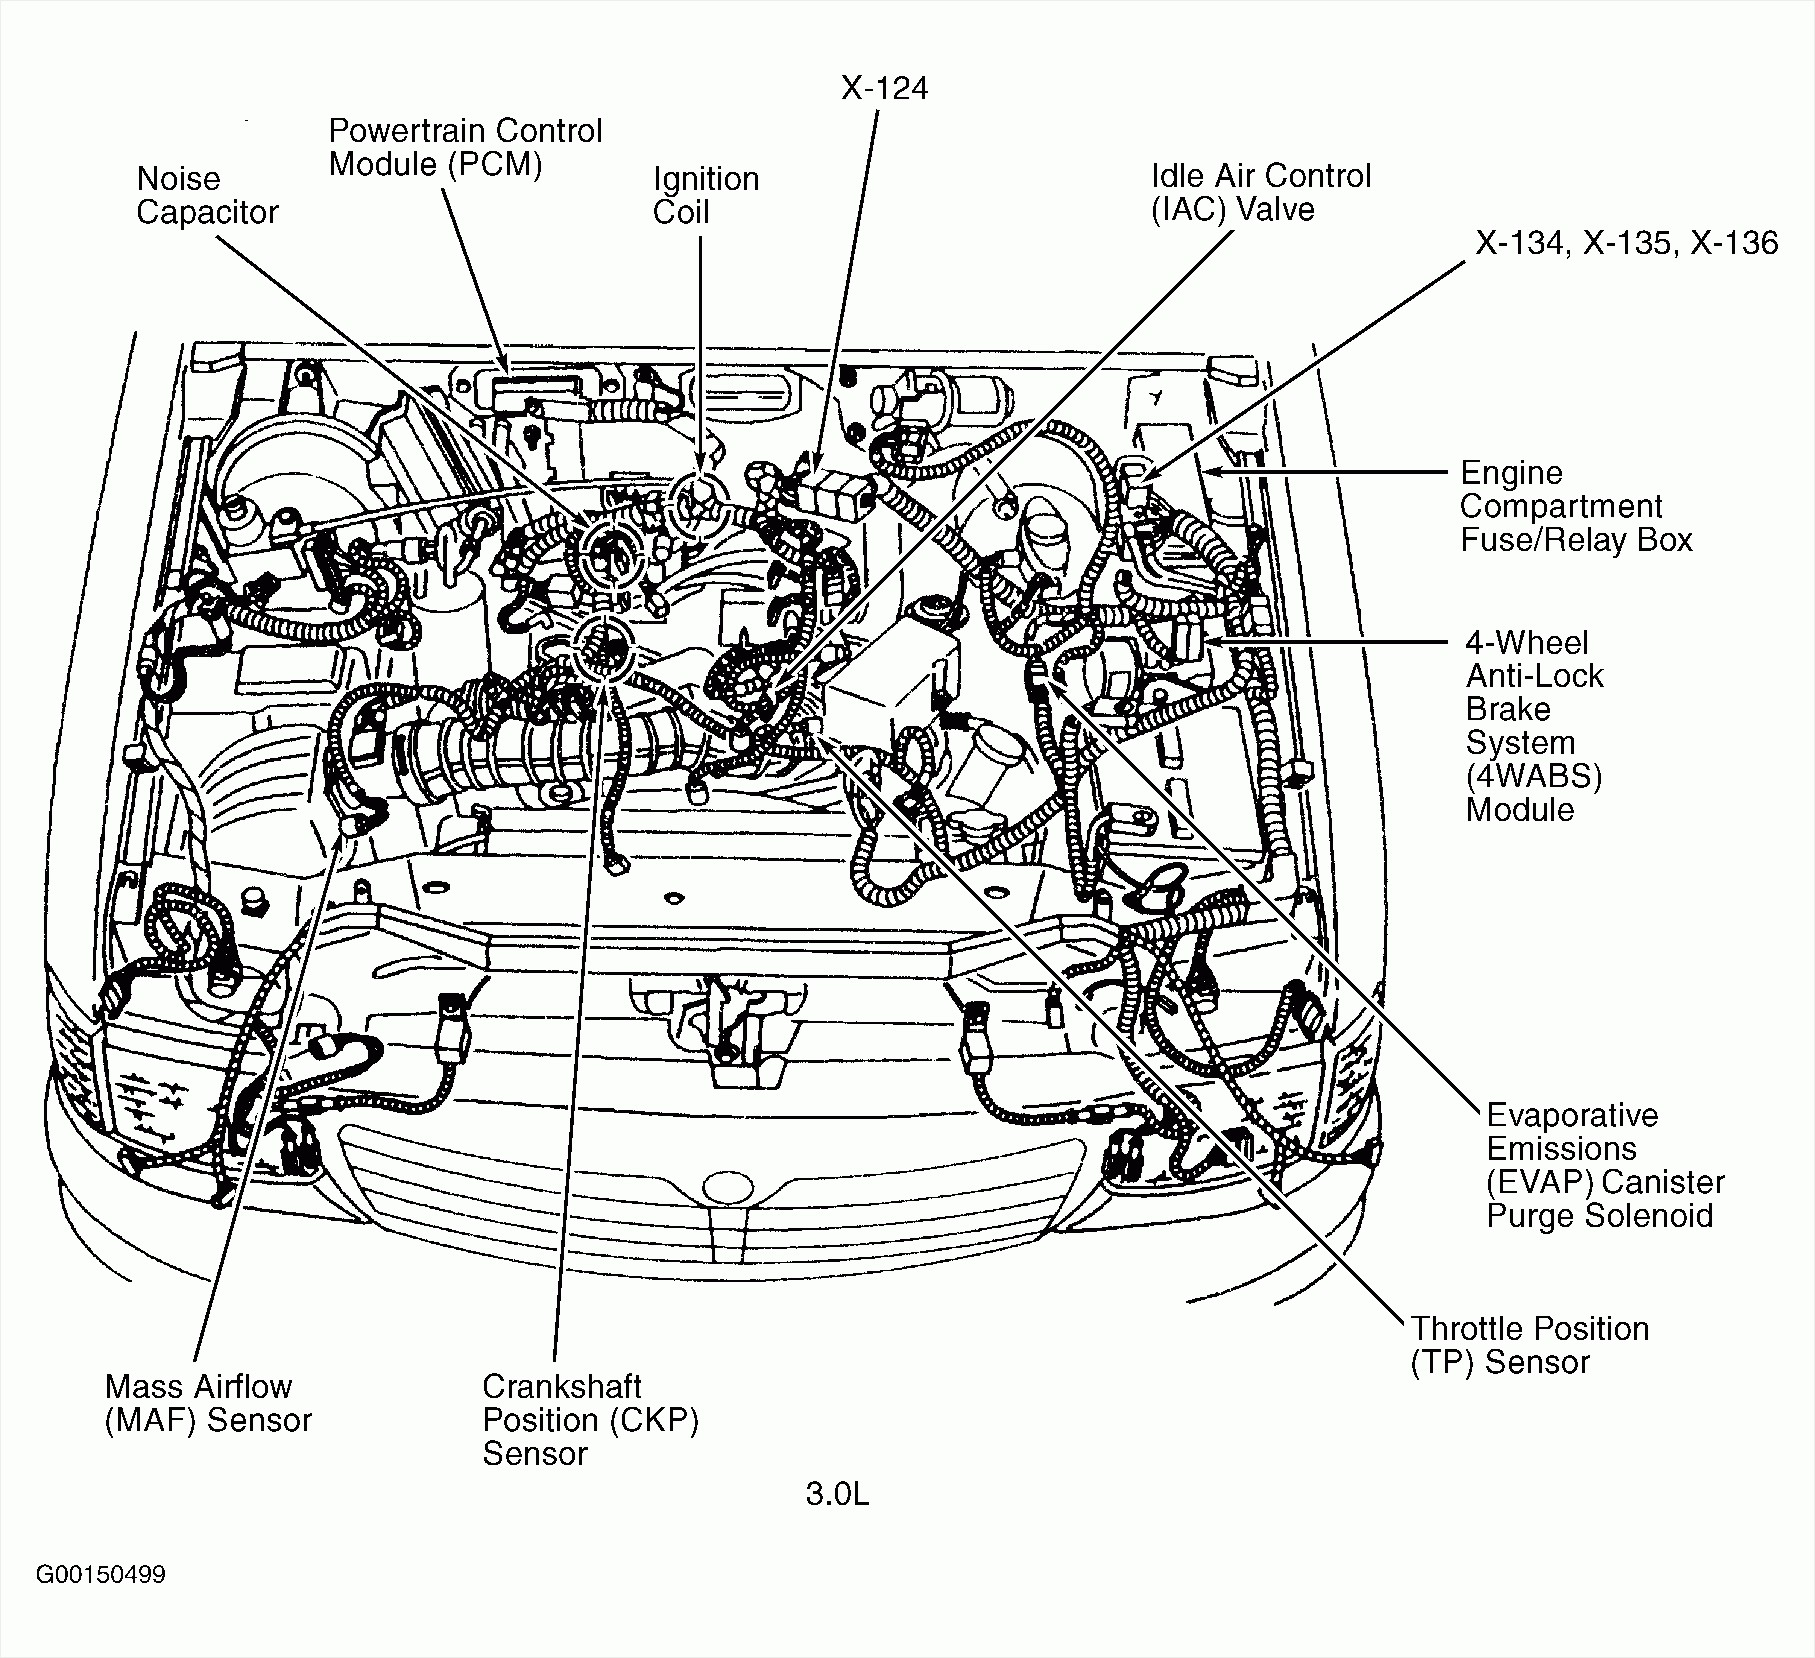 Vw Golf Tdi Engine Diagram Wiring Diagram Page Fame Best Fame Best Granballodicomo It